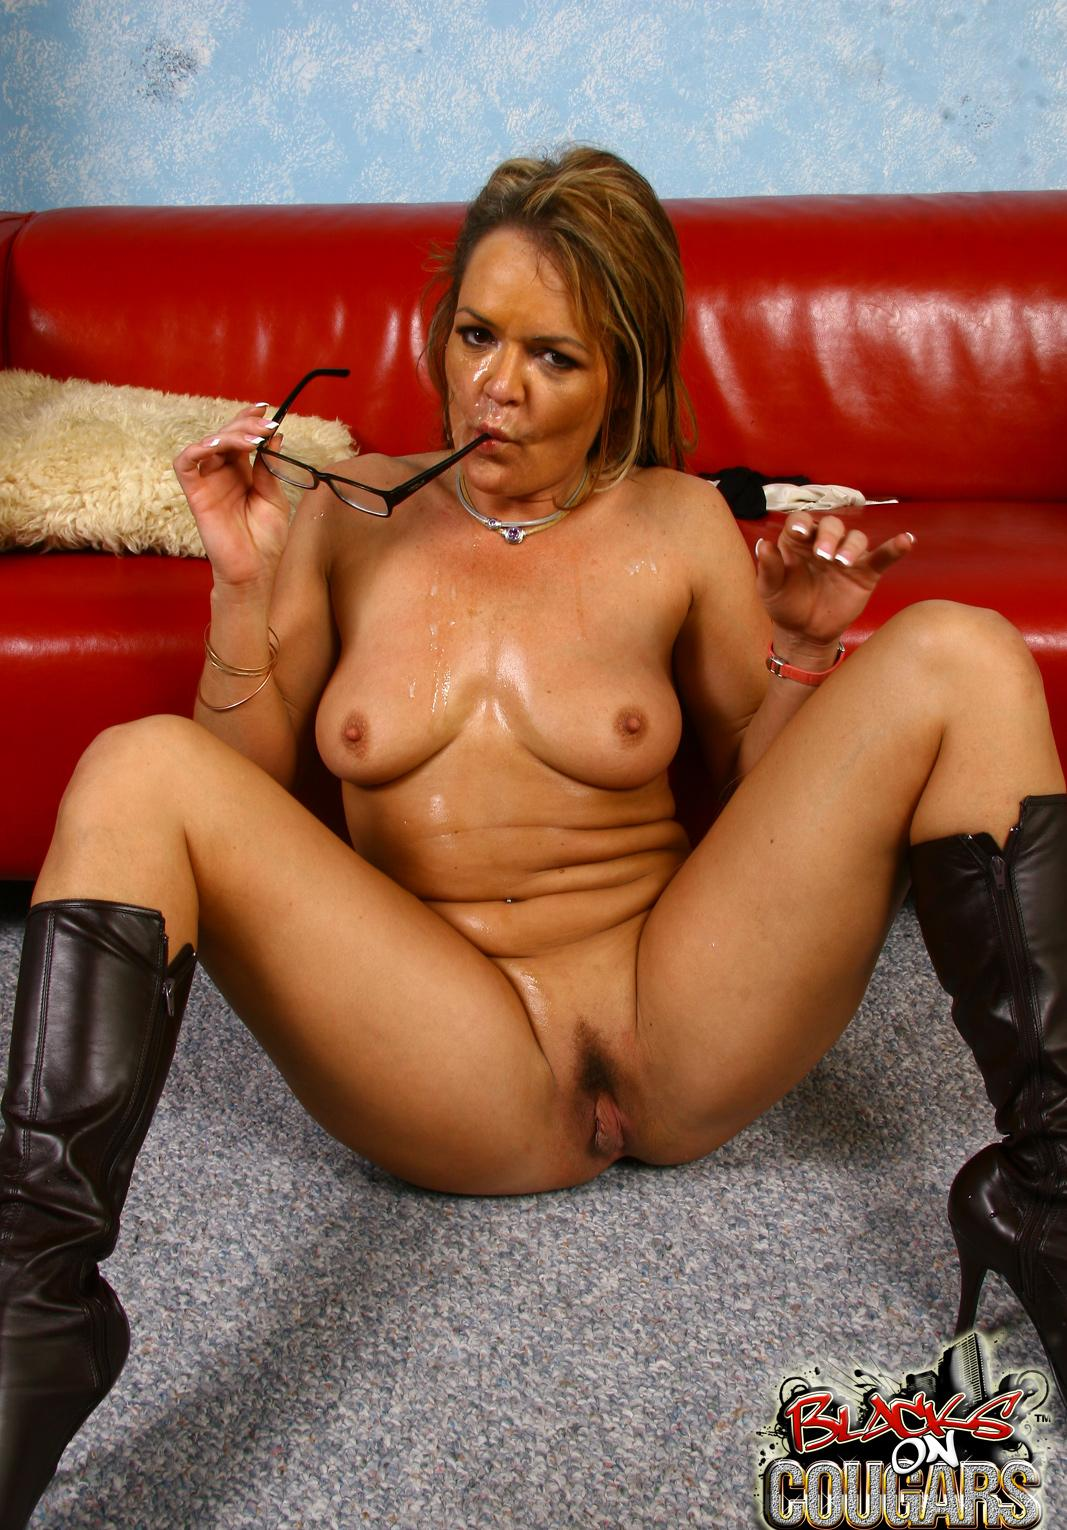 Sarah a beautyful granny curious granny is covered with black cum